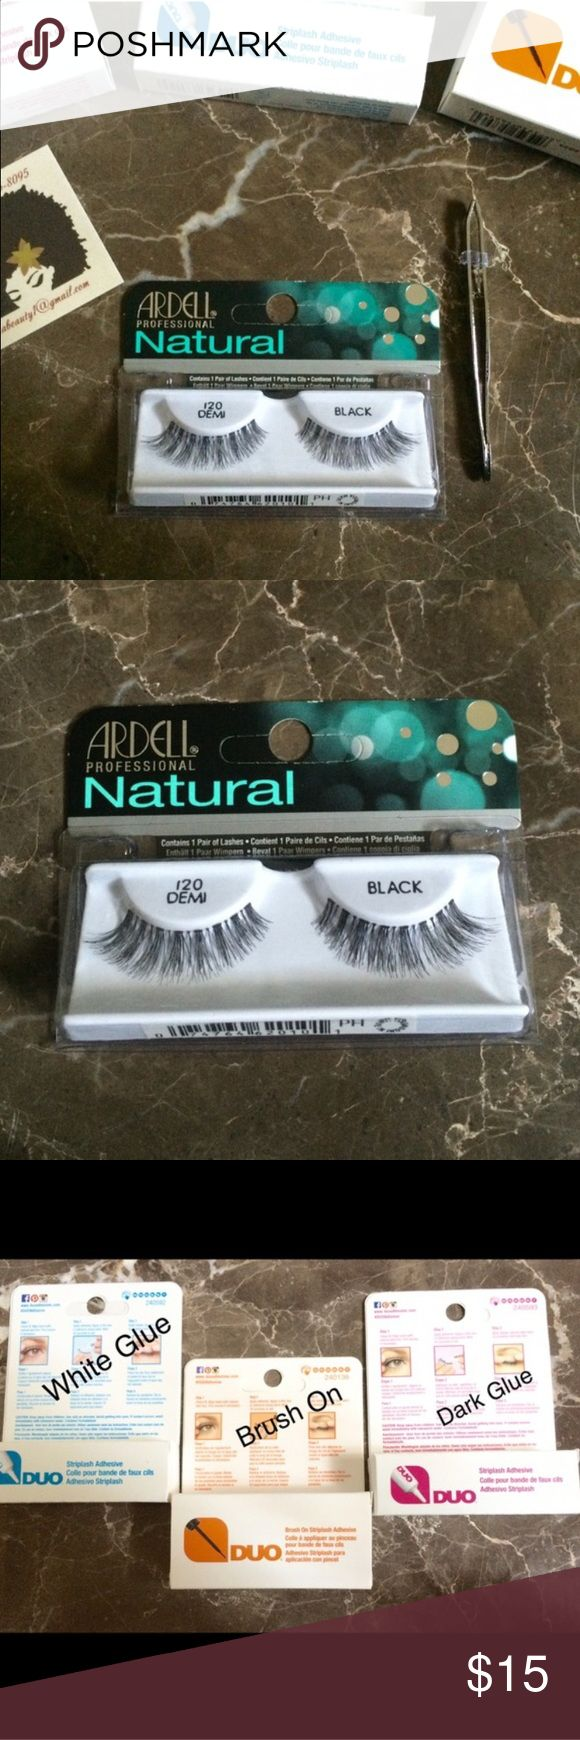 """""""Demi"""" Eyelash Kit Bundle New Eyelash Kit Bundle  Includes:  •1 Box of Eyelashes (100% human hair) •1 Tweezer ( use to apply lashes) • 1 Box of Adhesive Glue  *Before purchasing please specify which glue you would like in comments below*  • white glue  • brush on  • dark glue   Brand: Ardell   Duo   ✖️NO TRADES ✖️PRICE IS FIRM  THANK YOU FOR YOUR SUPPORT MAC Cosmetics Makeup False Eyelashes"""